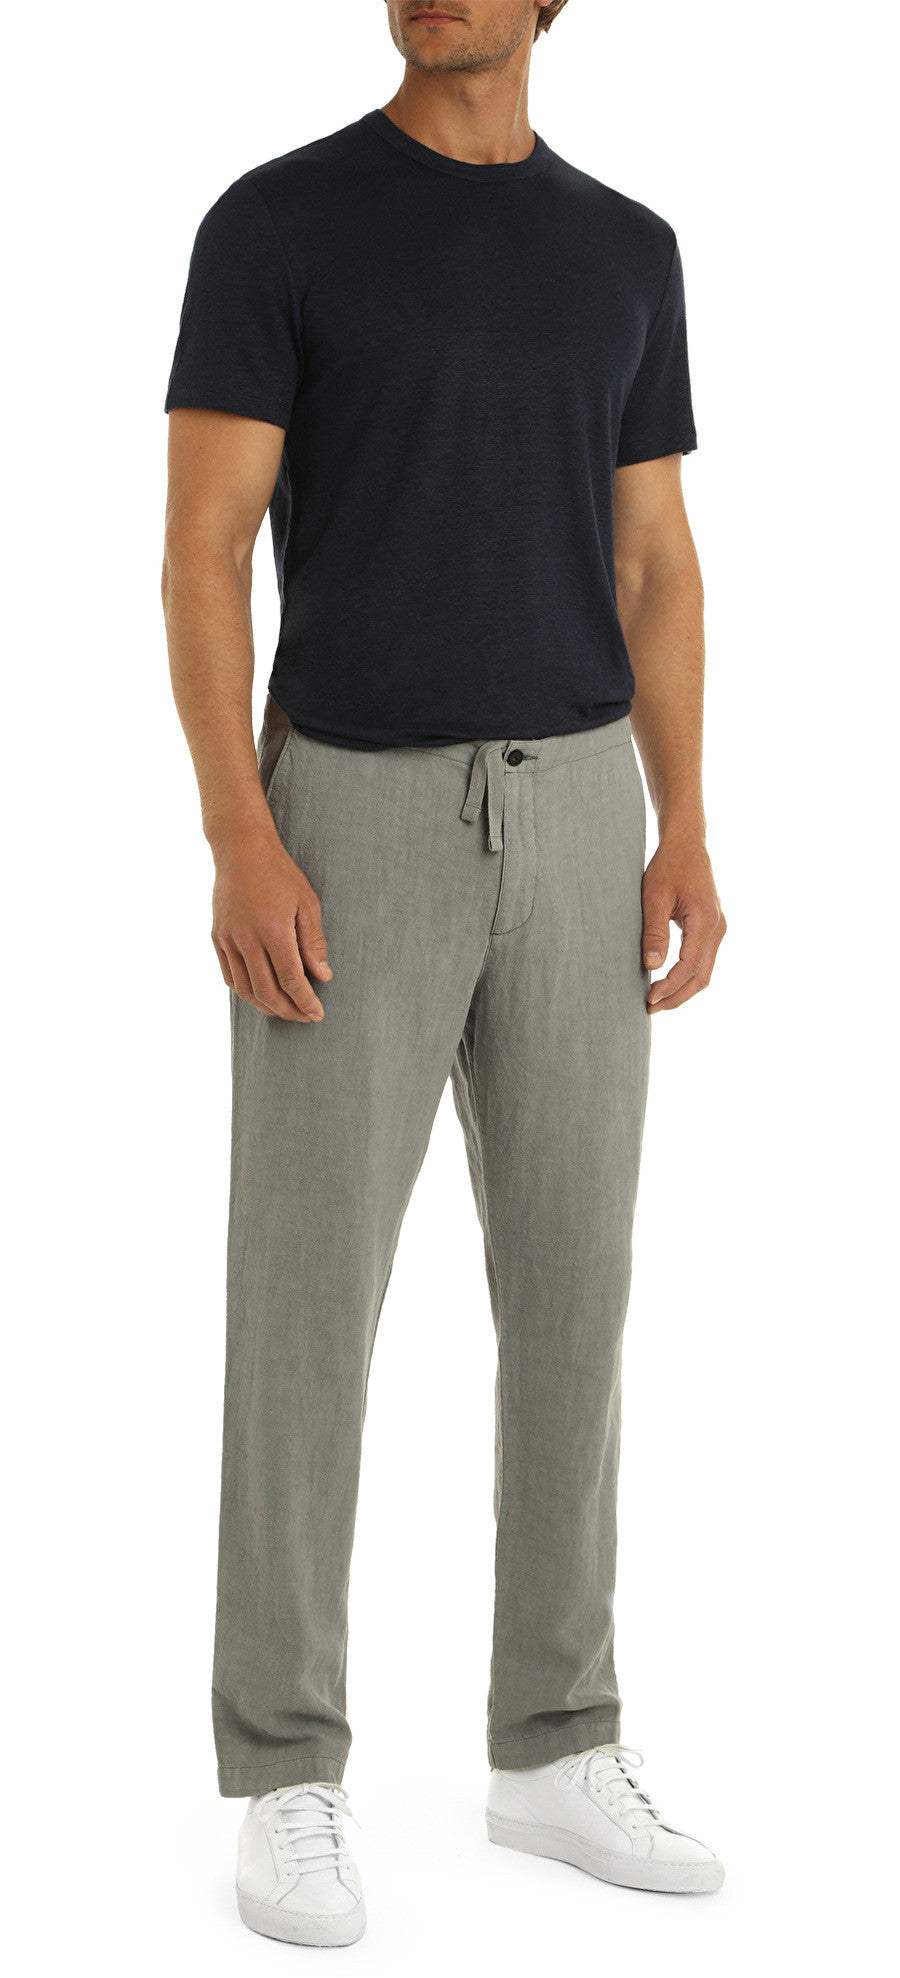 MONROE LINEN GREY TROUSERS